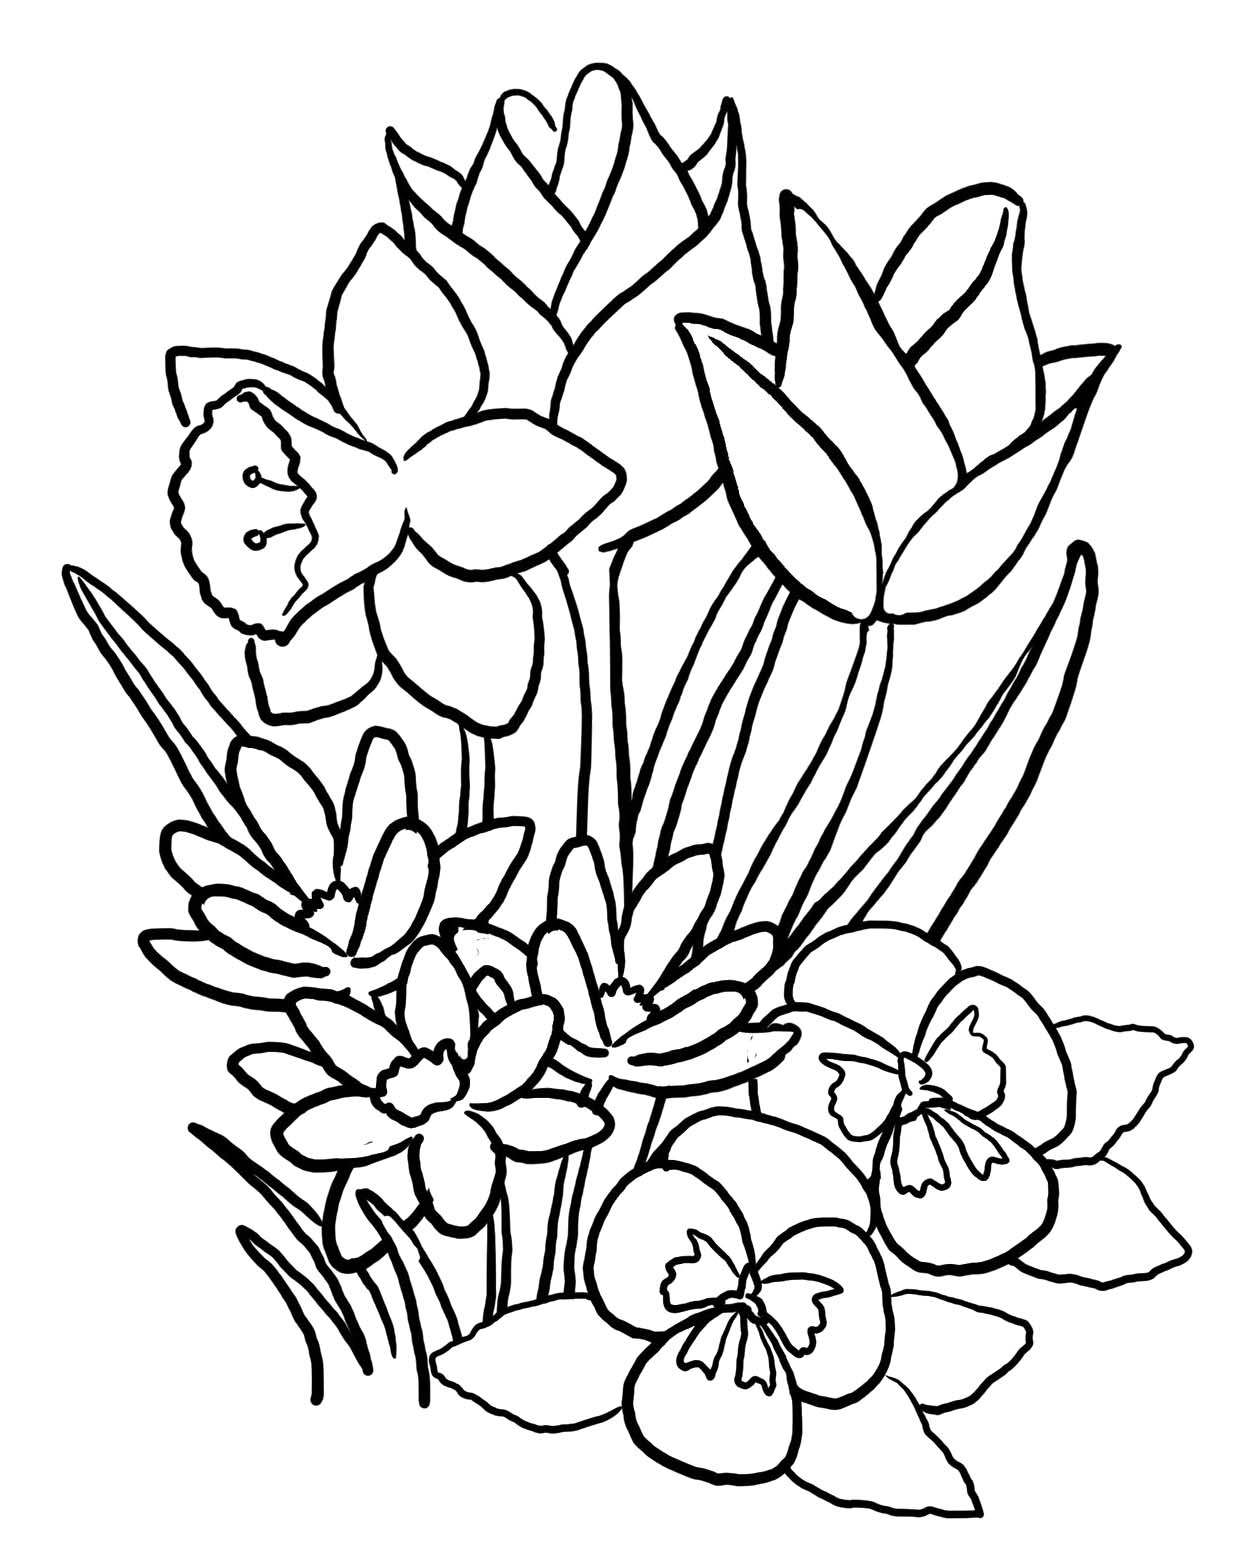 printable flowers coloring pages free printable hibiscus coloring pages for kids printable flowers coloring pages